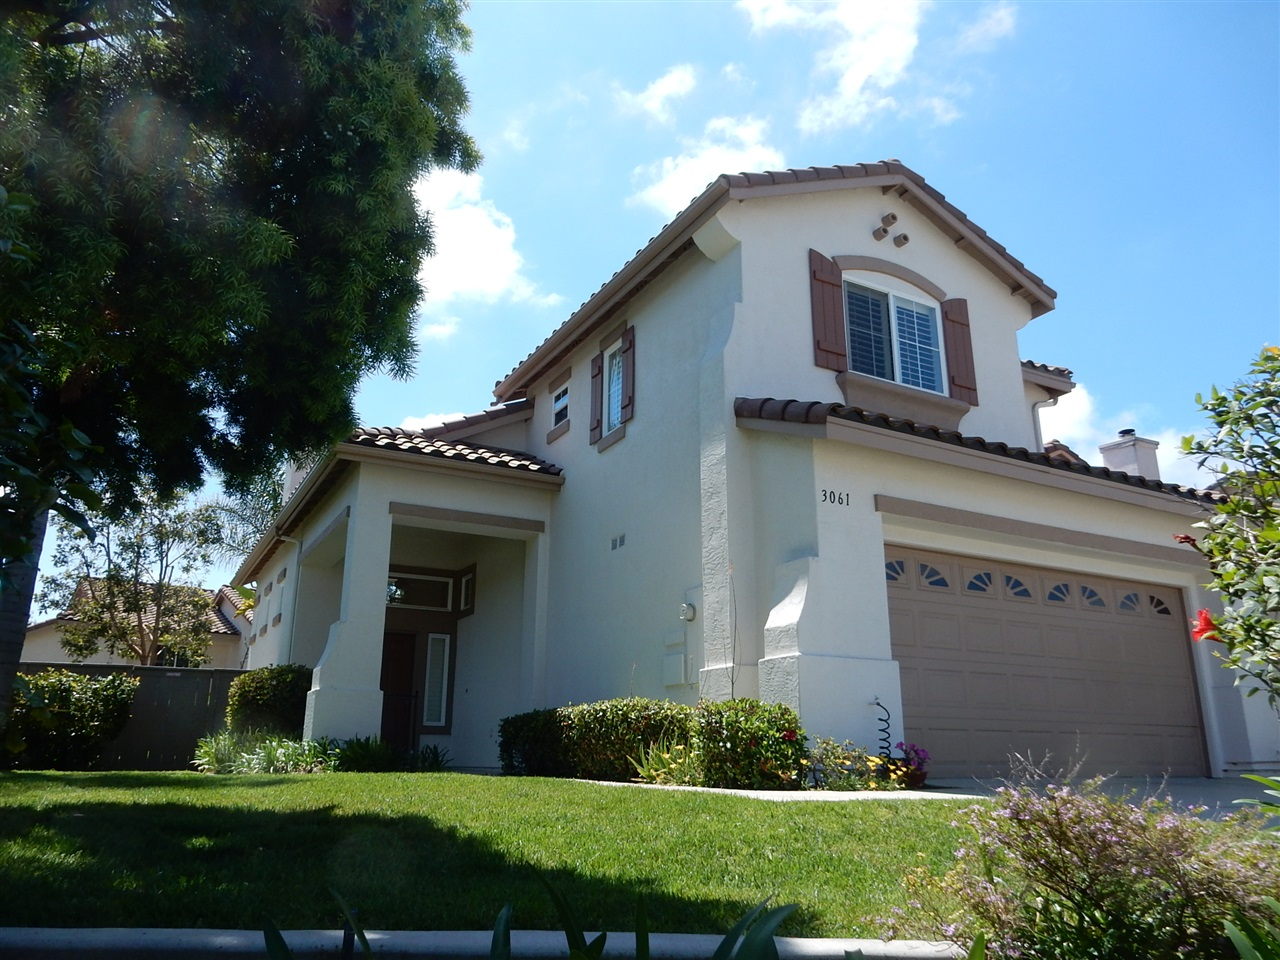 Main Photo: CARLSBAD EAST Twinhome for sale : 3 bedrooms : 3061 Rancho La Presa in Carlsbad